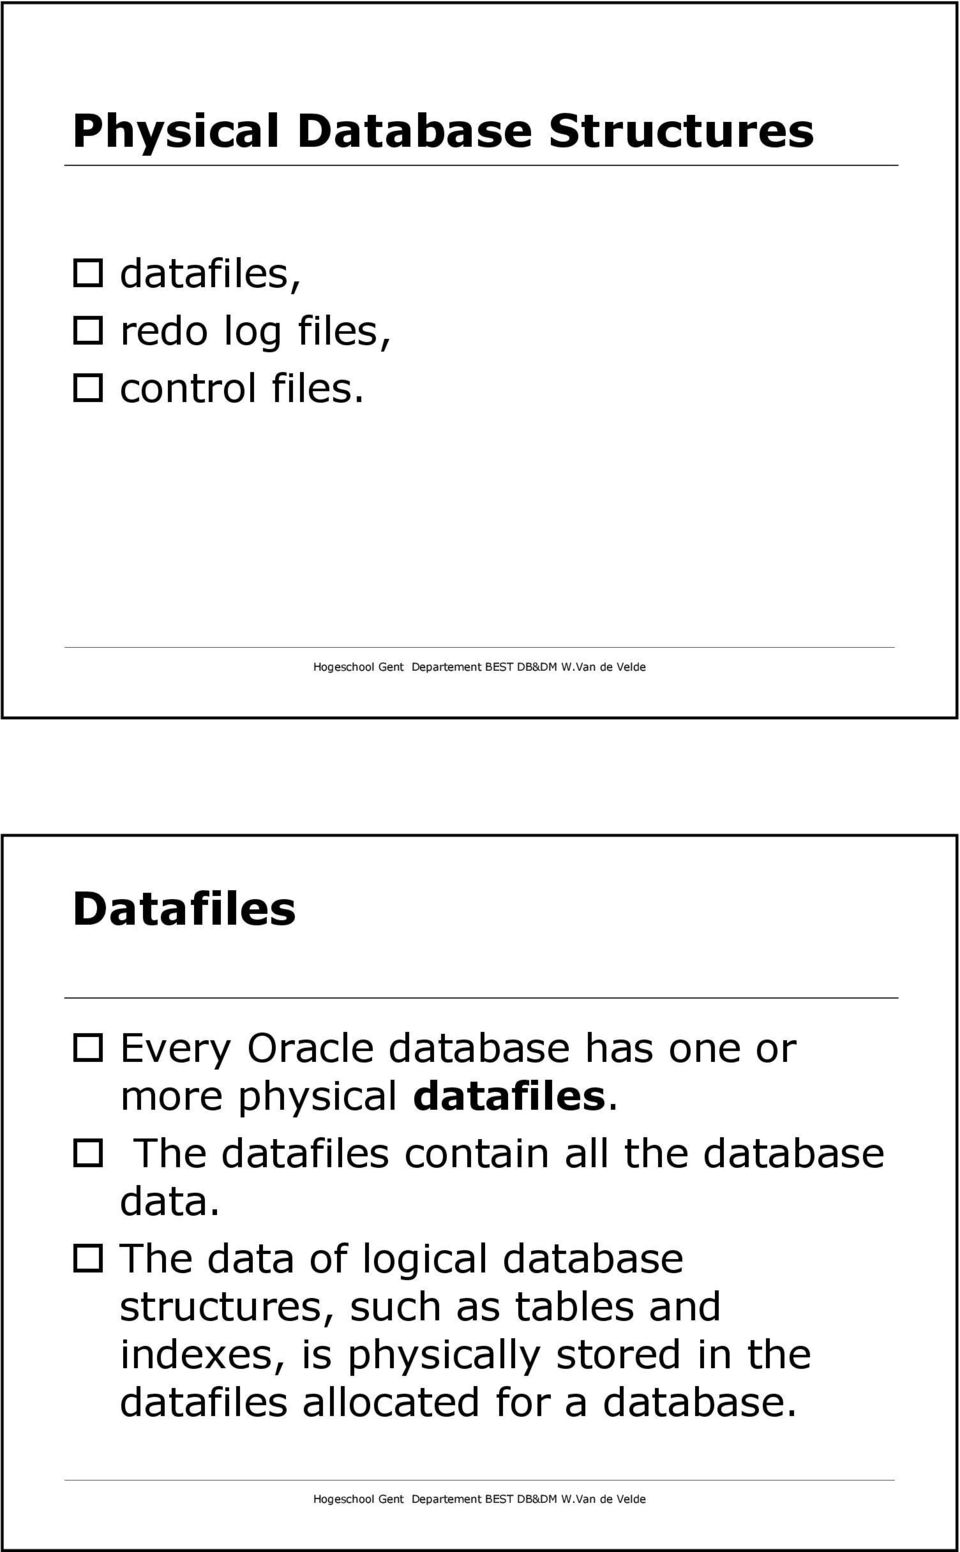 The datafiles contain all the database data.